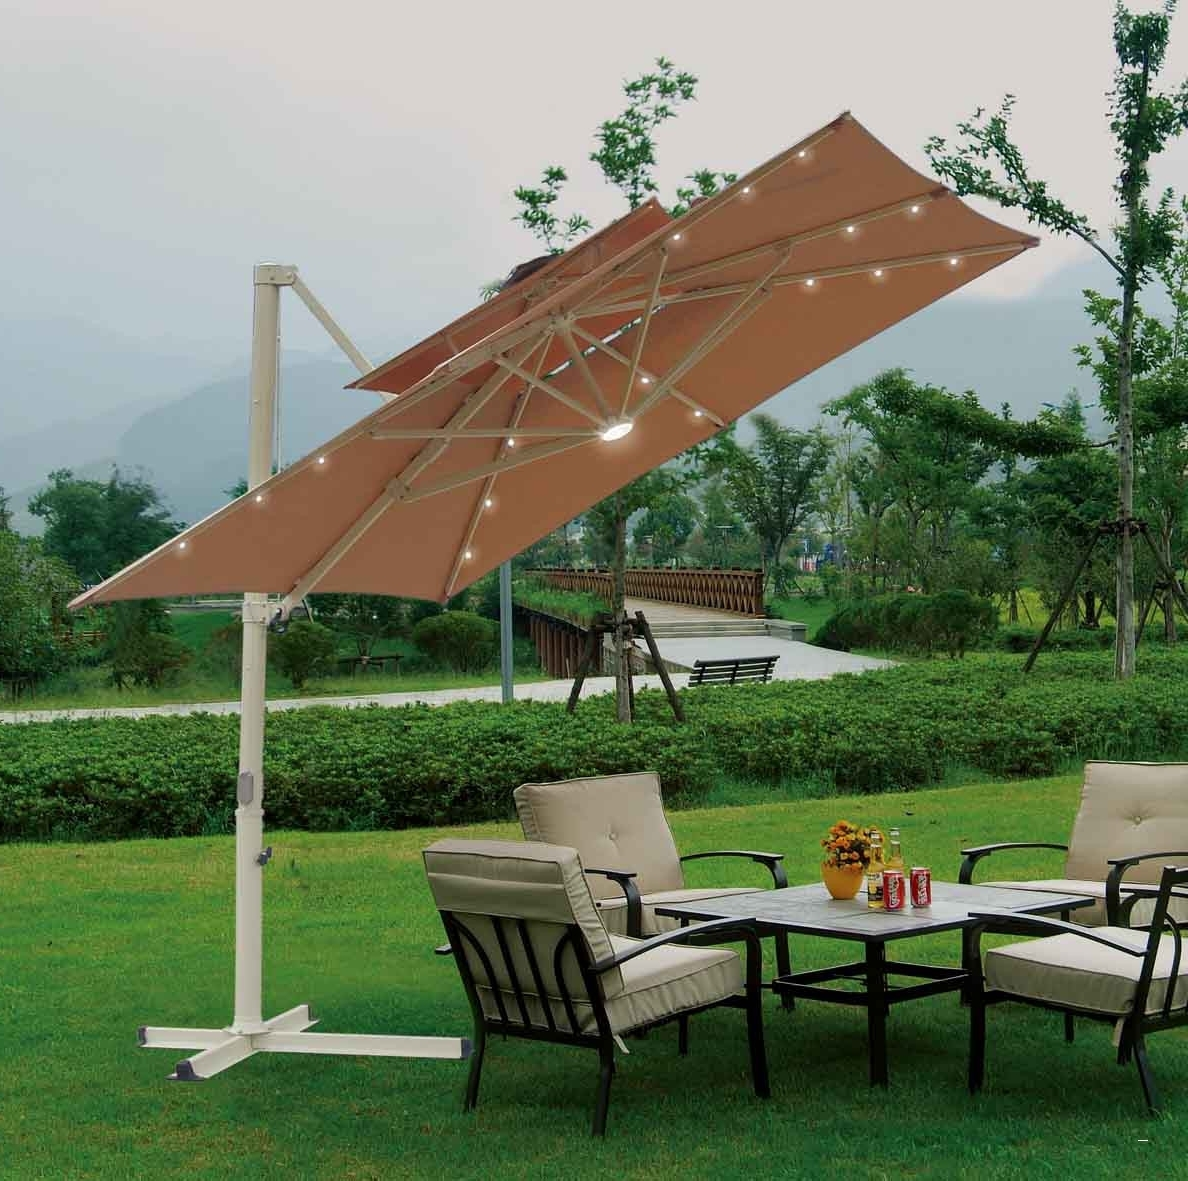 Offset Rectangular Patio Umbrellas In Current Rectangular Offset Patio Umbrella – Gorgeous Fset Umbrella With (View 8 of 20)